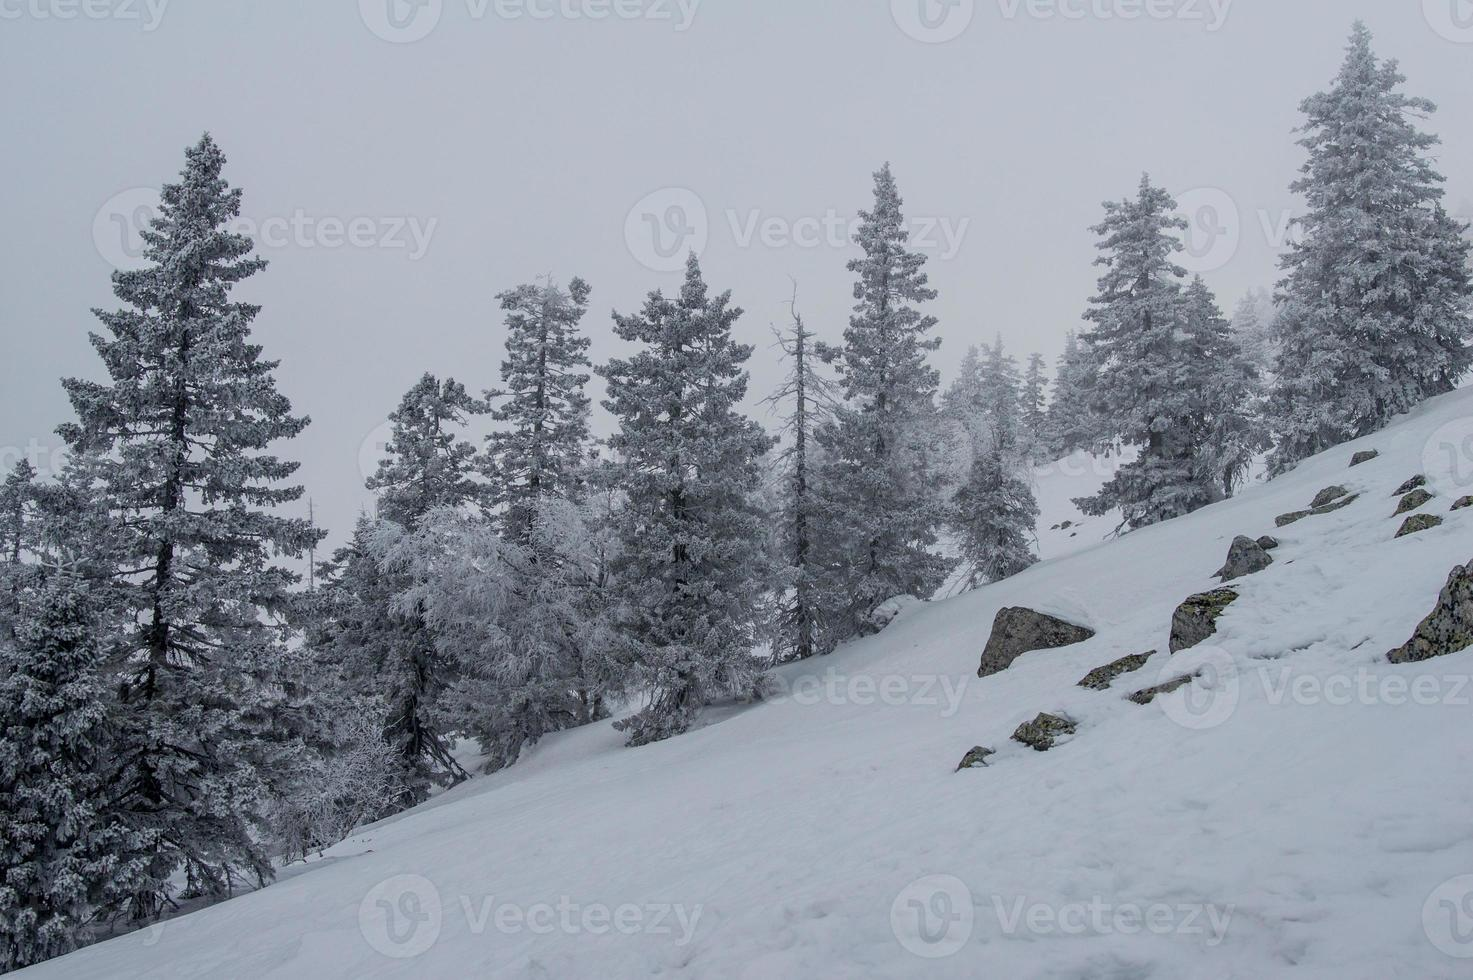 snow-covered forest on the slopes of the mountain. photo